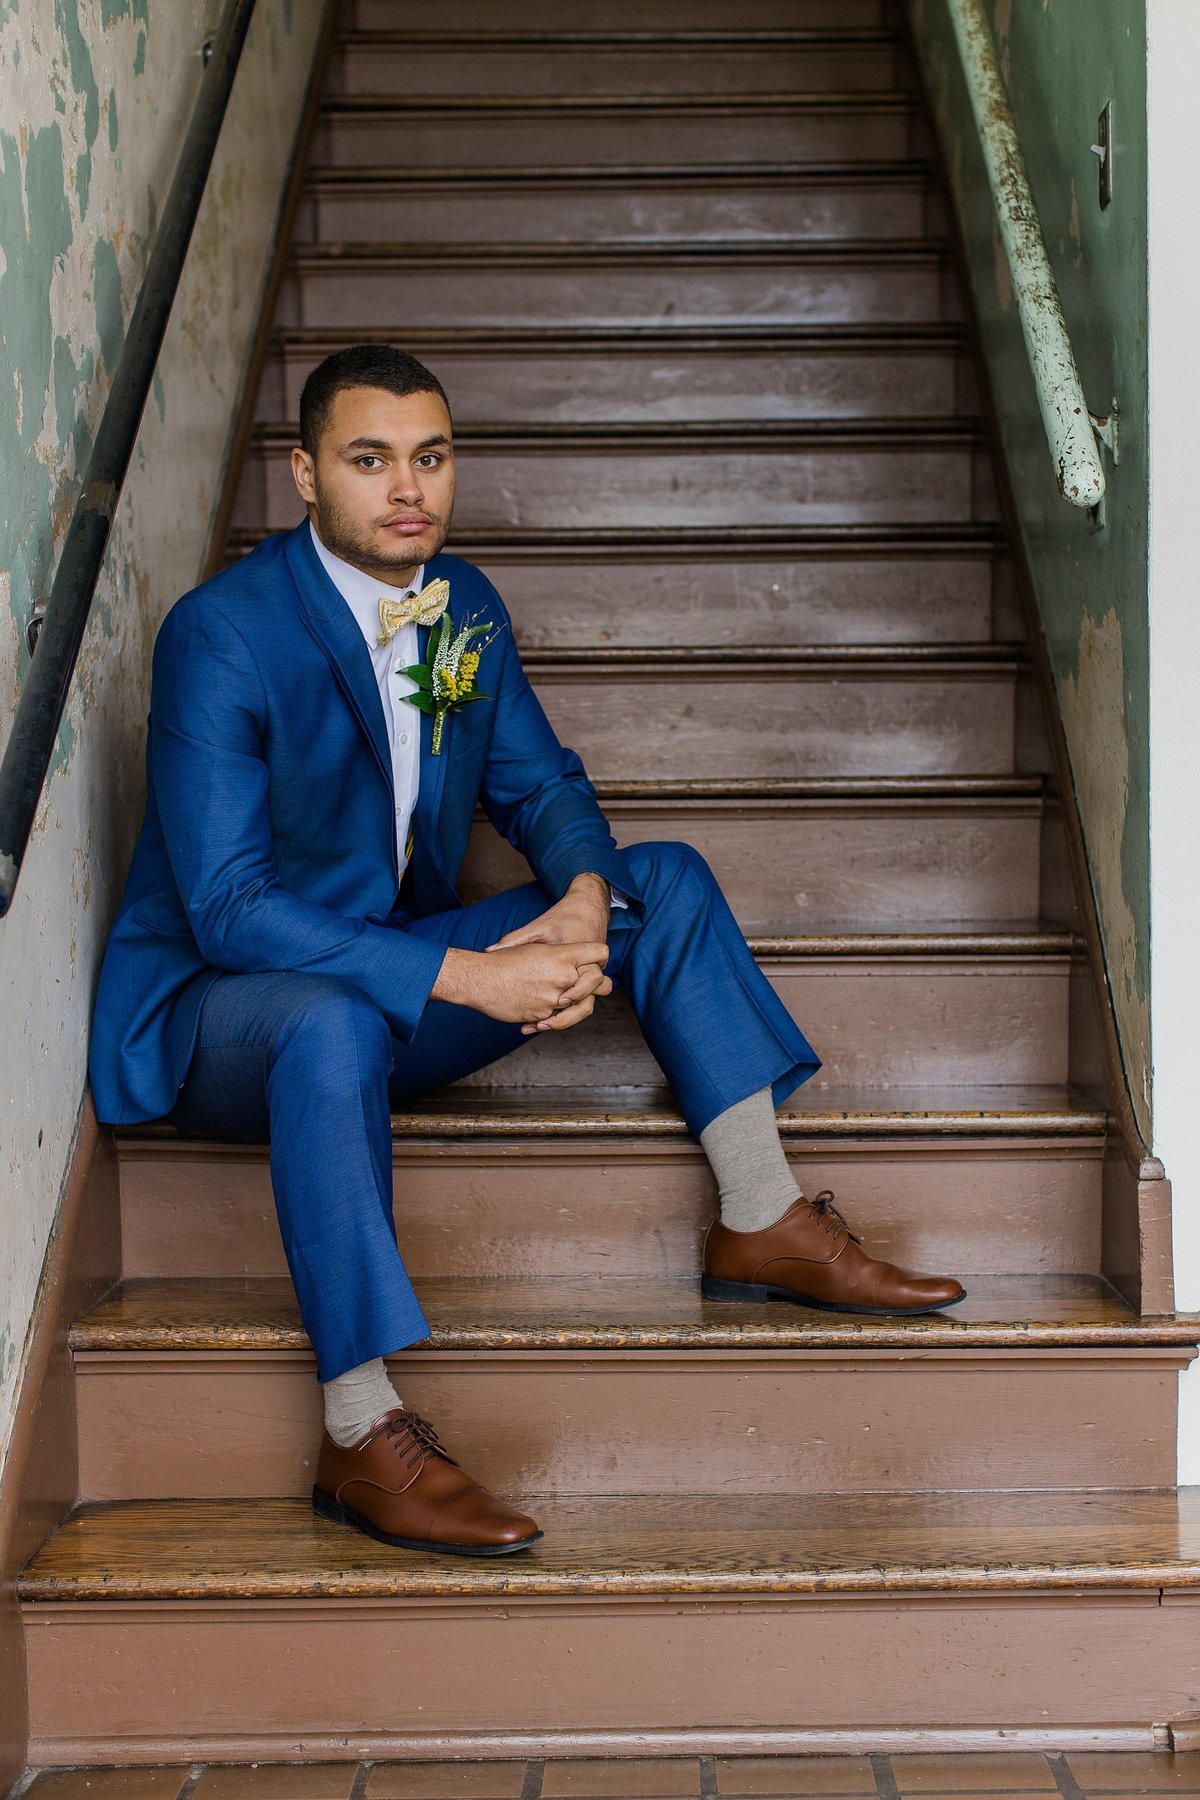 groom-navy-suit-brown-shoes-stairs-yellow-bowtie